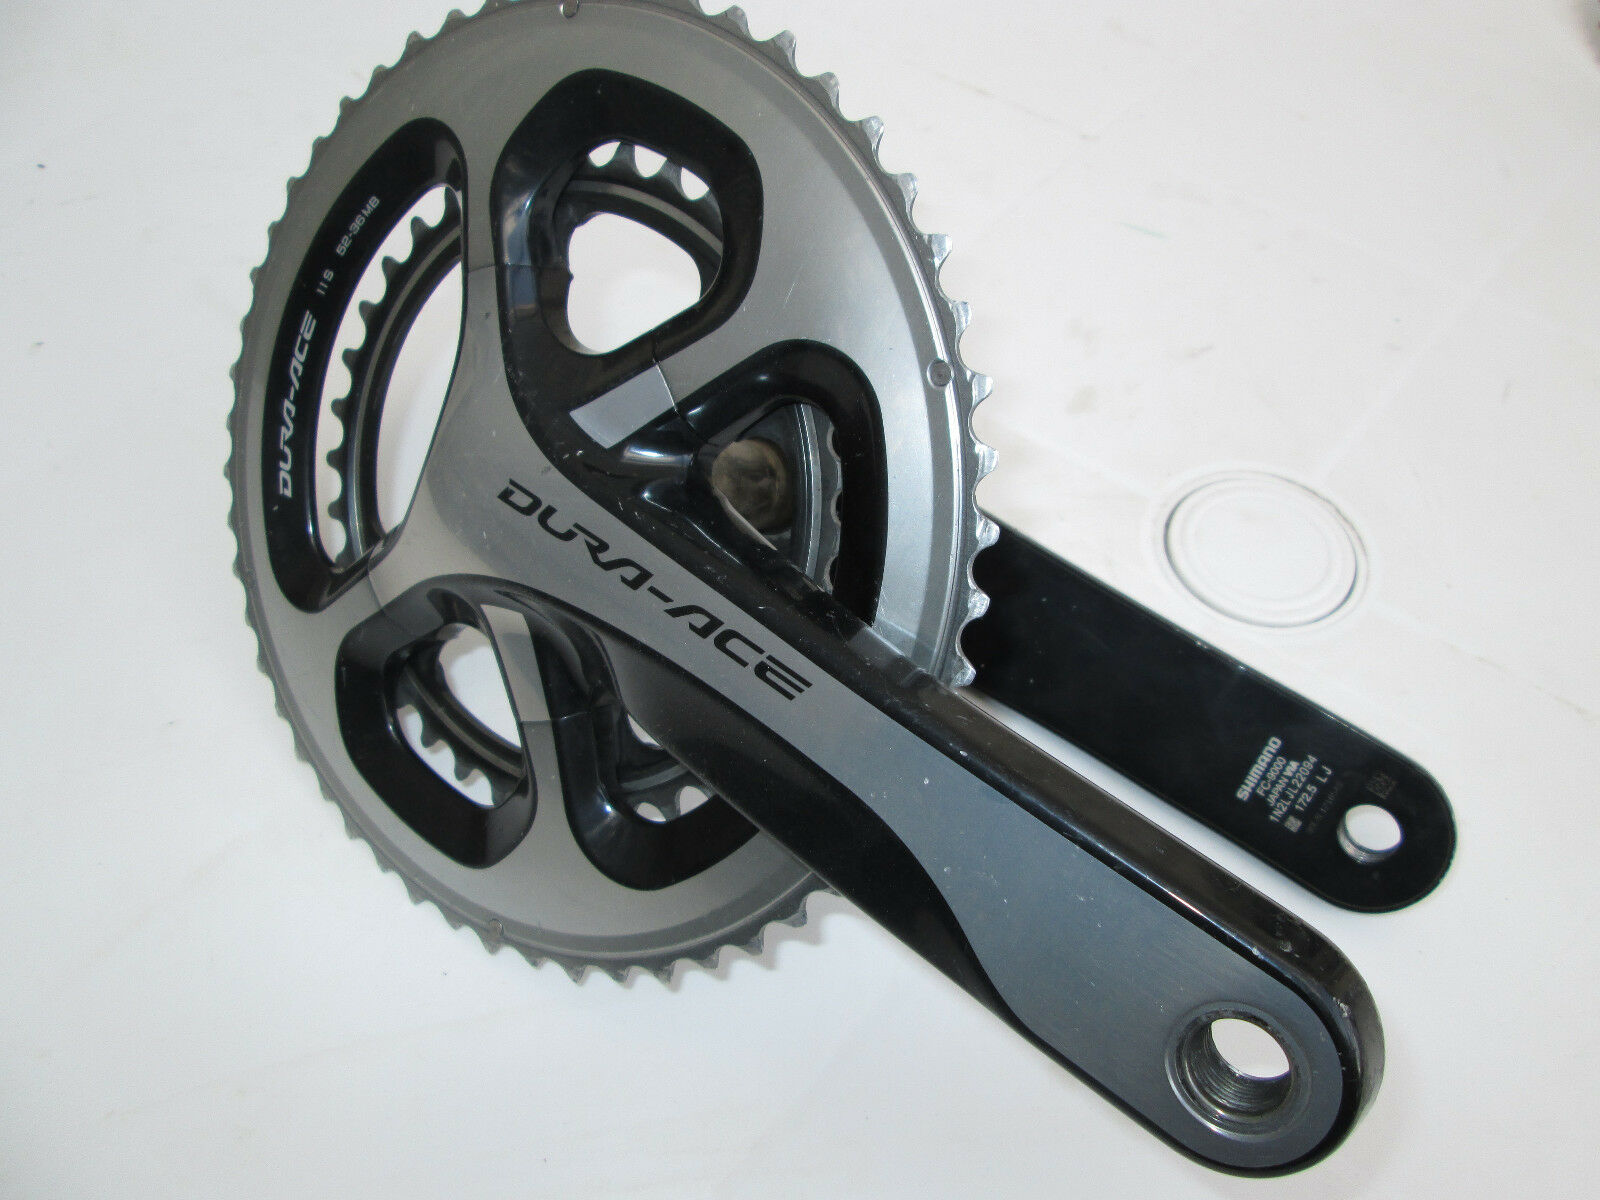 52  36 172.5mm Midcompact Shimano Dura Ace 9000 Crankset Road Cycling